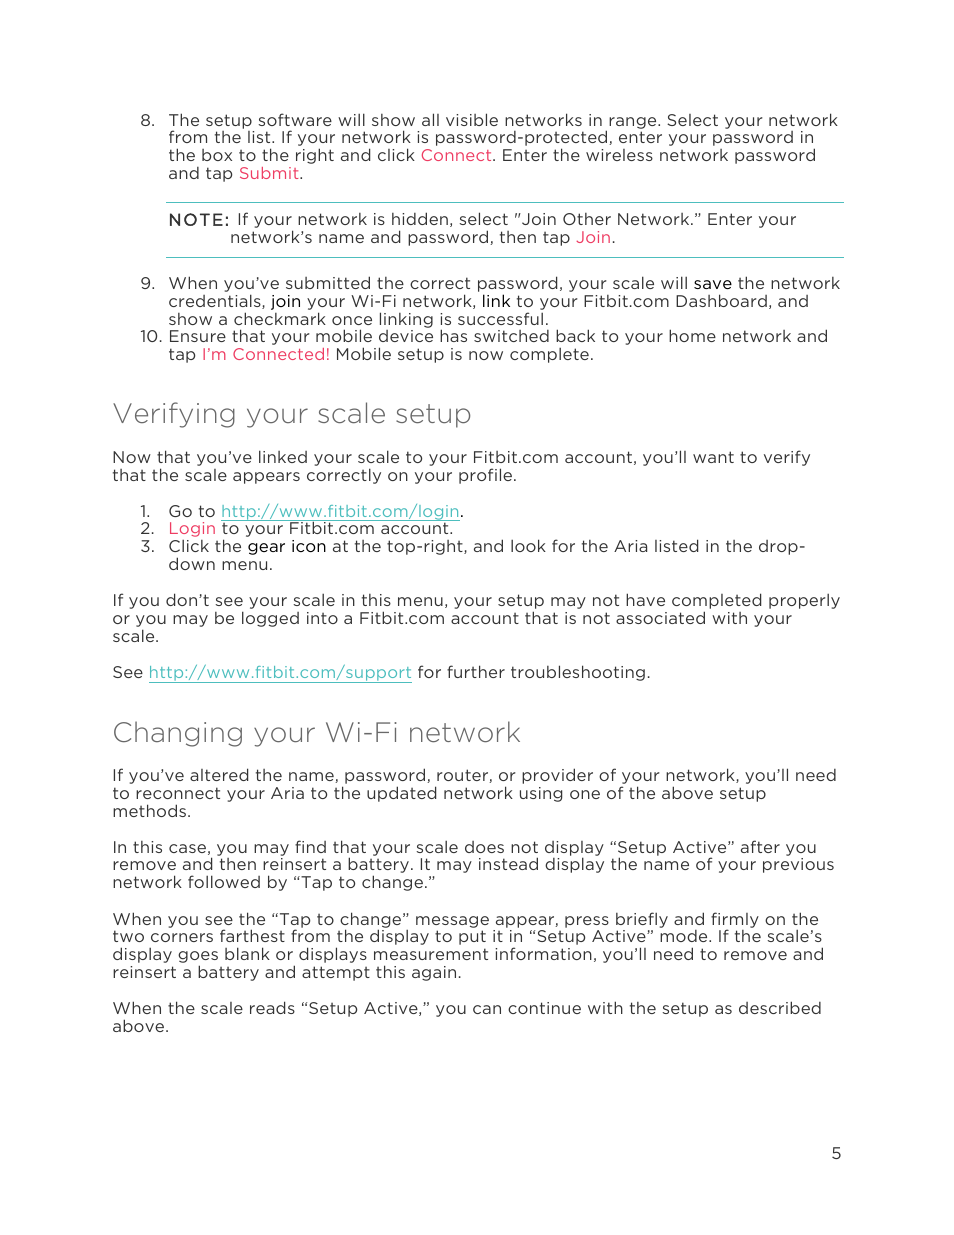 Verifying your scale setup, Changing your wi-fi network | Fitbit